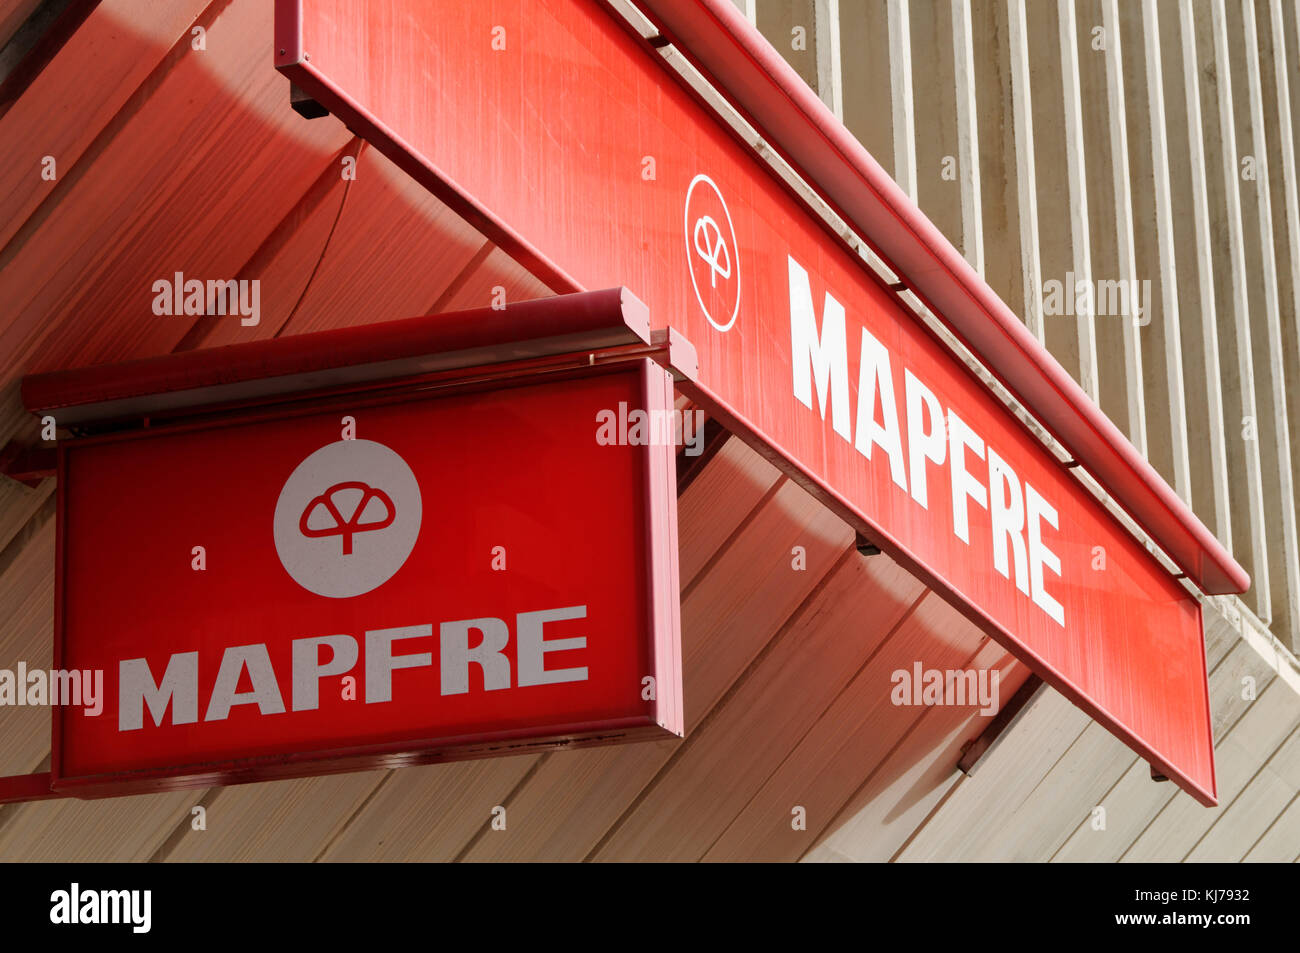 Mapfre Cuadro Medico Mapfre Insurance Stock Photos Mapfre Insurance Stock Images Alamy